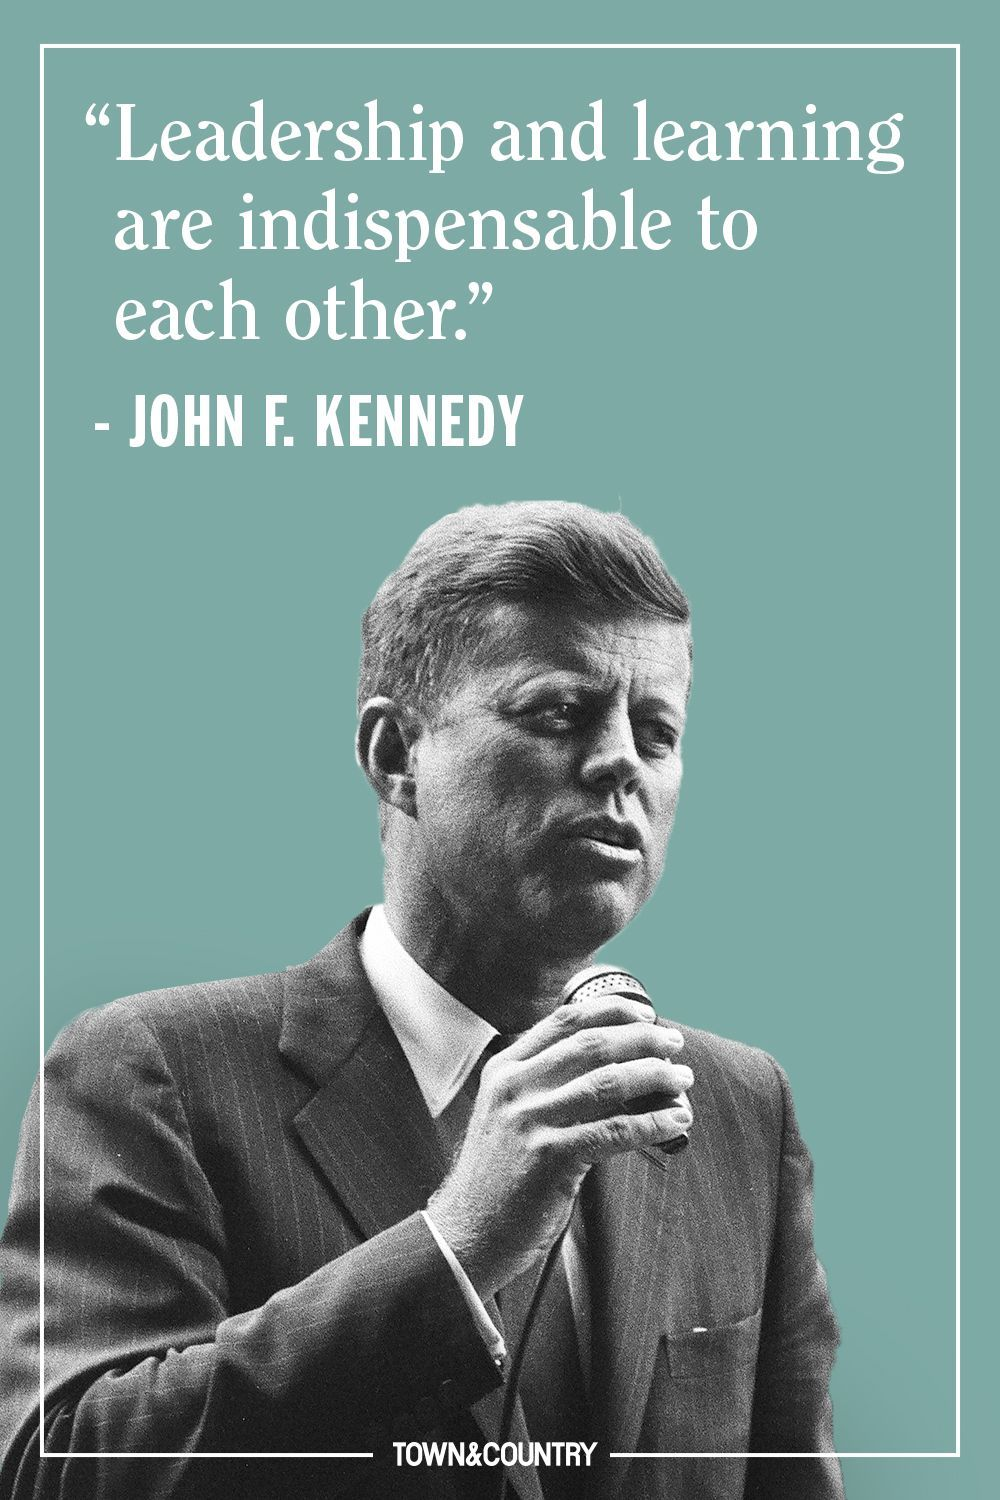 Jfk Quotes Interesting 12 Jfk Quotes That Prove His Wisdom Is As Legendary As His